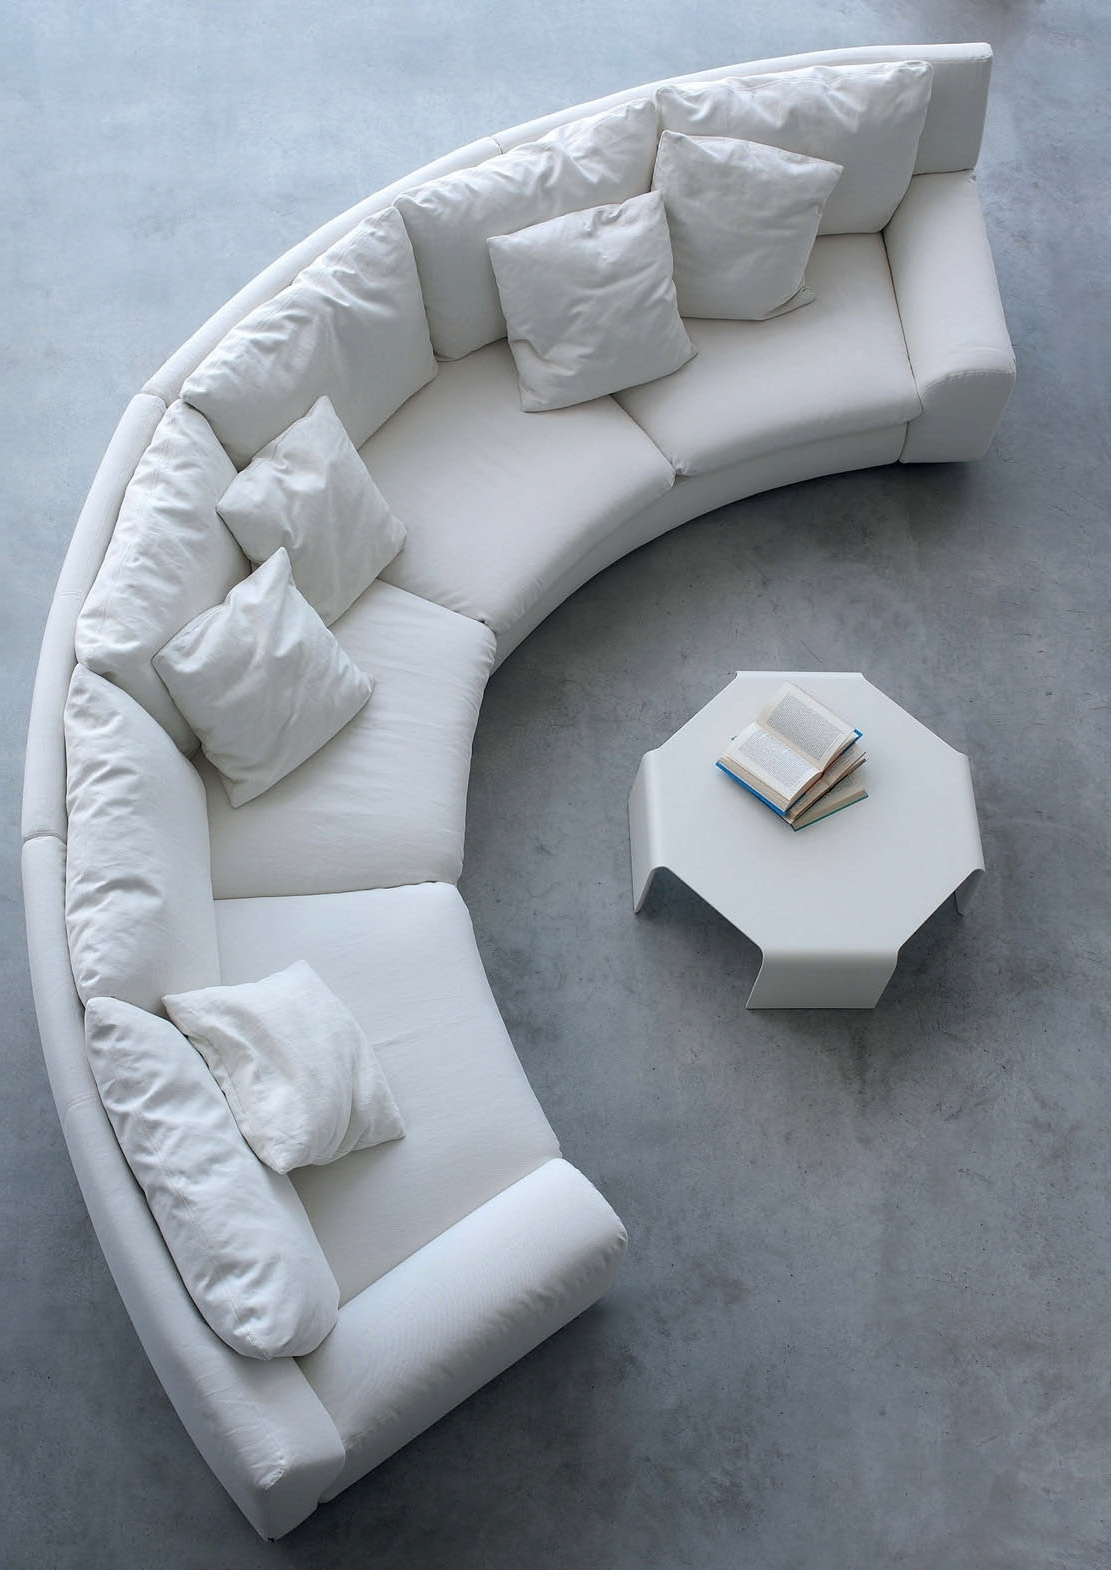 The Semicircular Sofa In Fabric Ben Ben, Arflex – Luxury Furniture Mr Within Fashionable Semicircular Sofas (View 19 of 20)